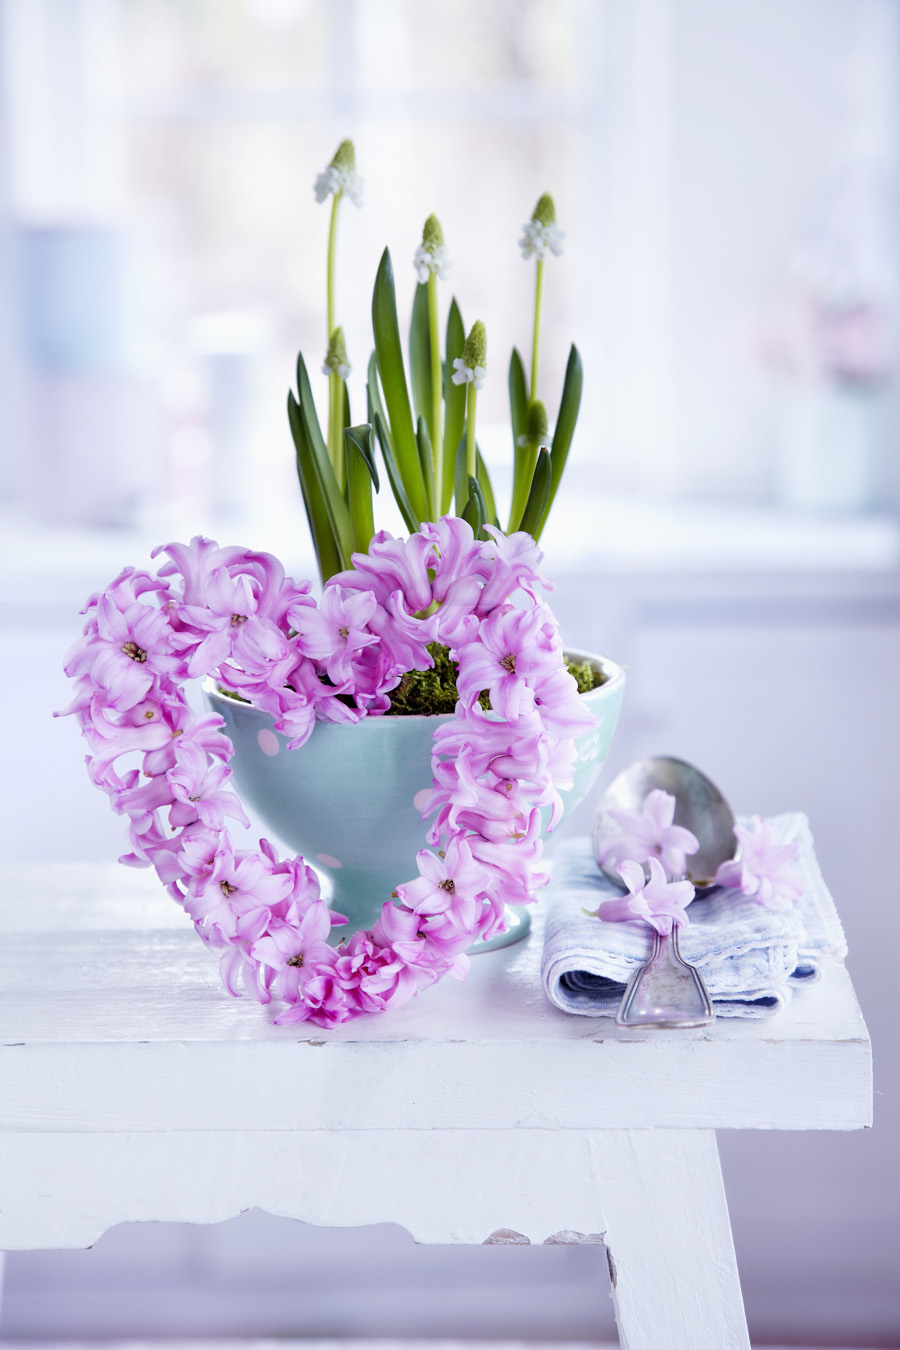 Small, heart-shaped wreaths of hyacinth florets in front of bowl of grape hyacinths